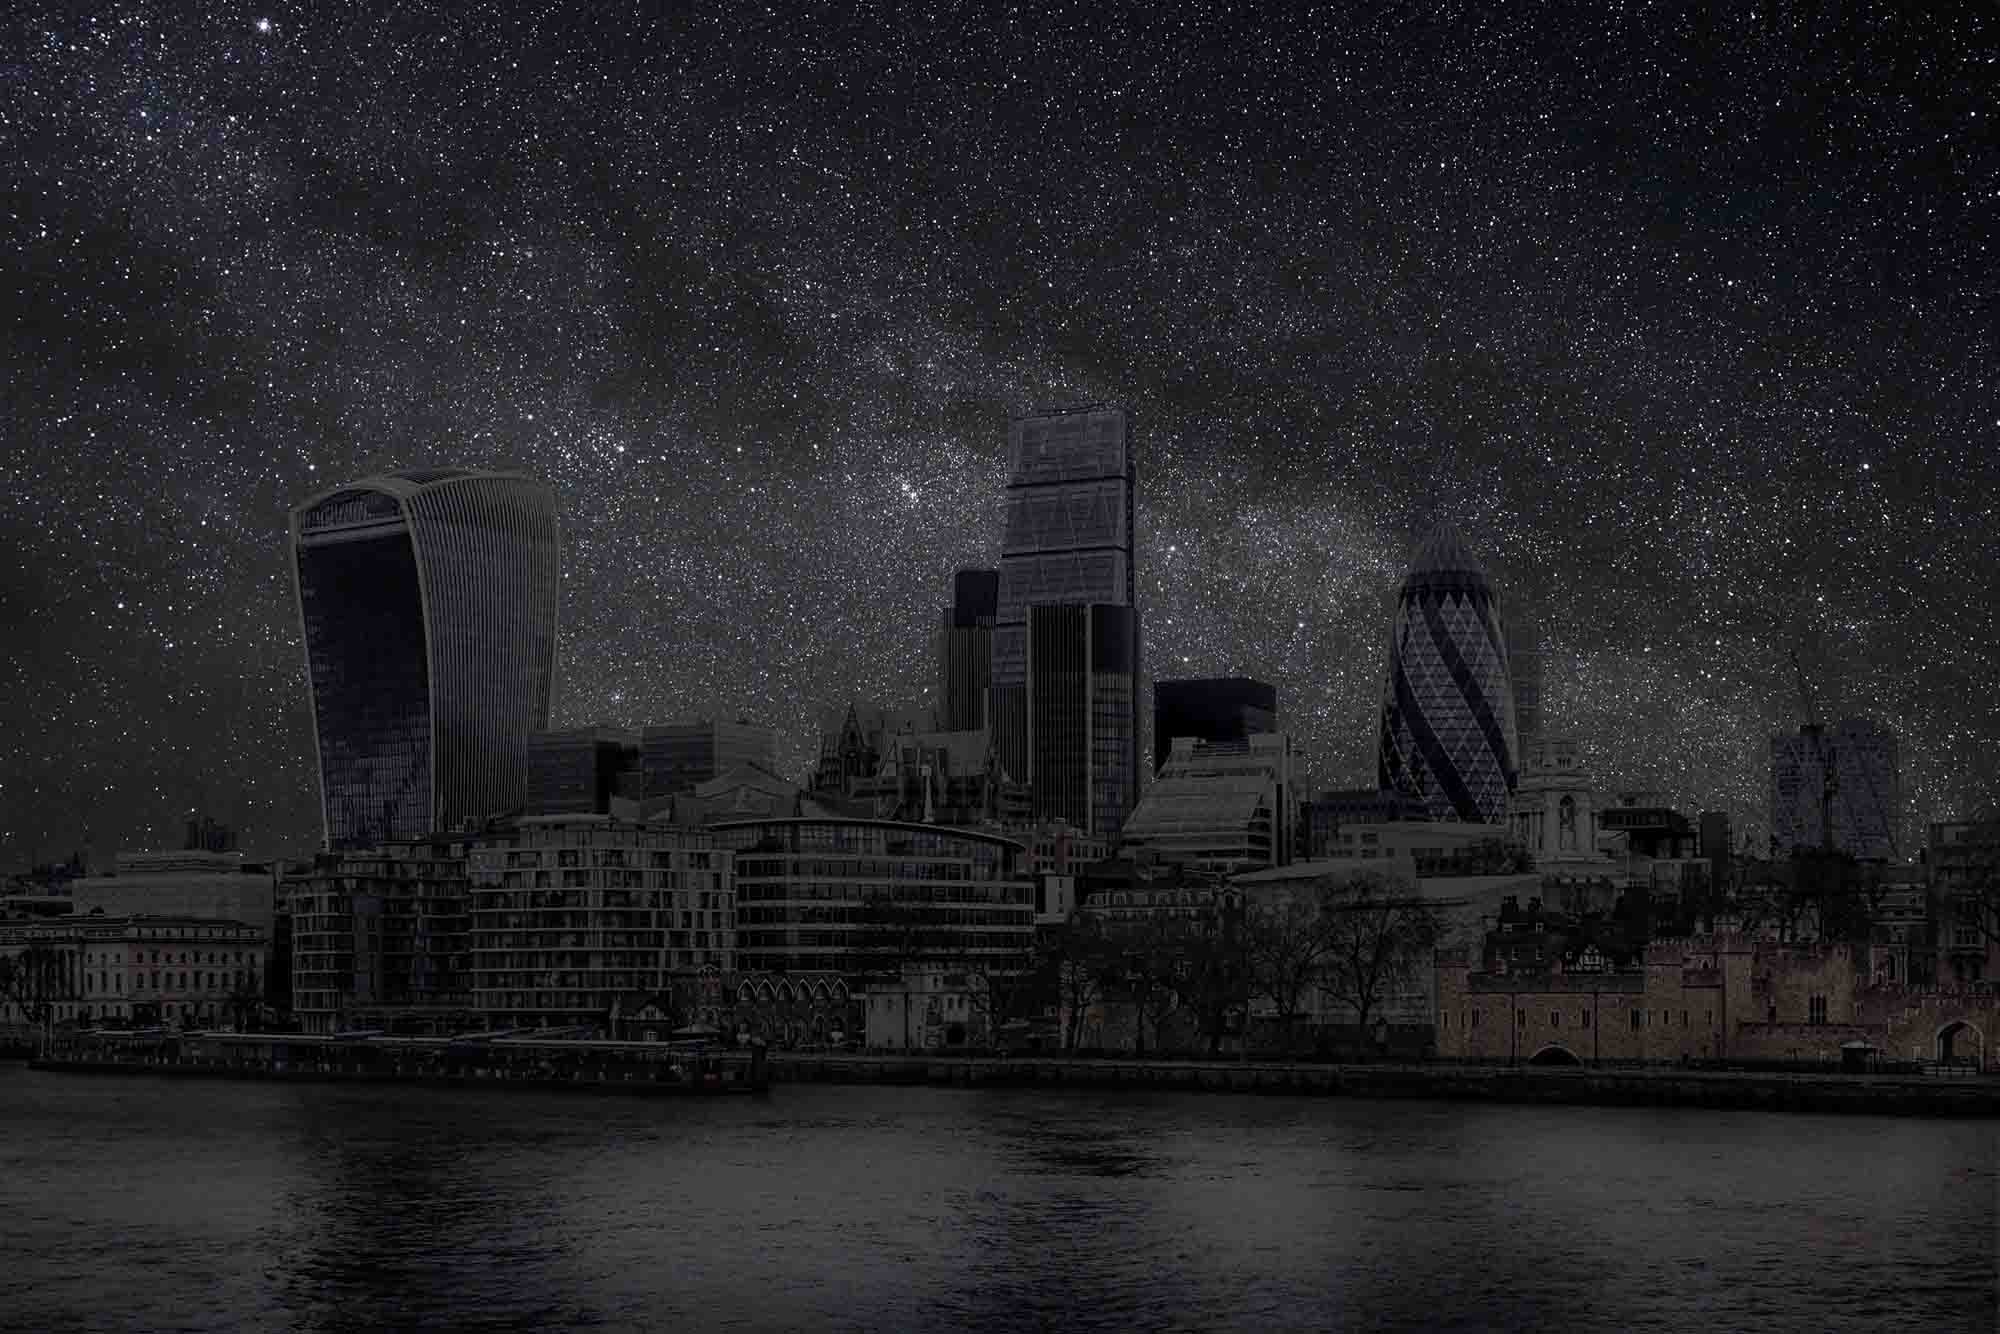 London 51° 30' 17'' N 2015-02-17 lst 10:39<br/>Darkened Cities - Villes éteintes